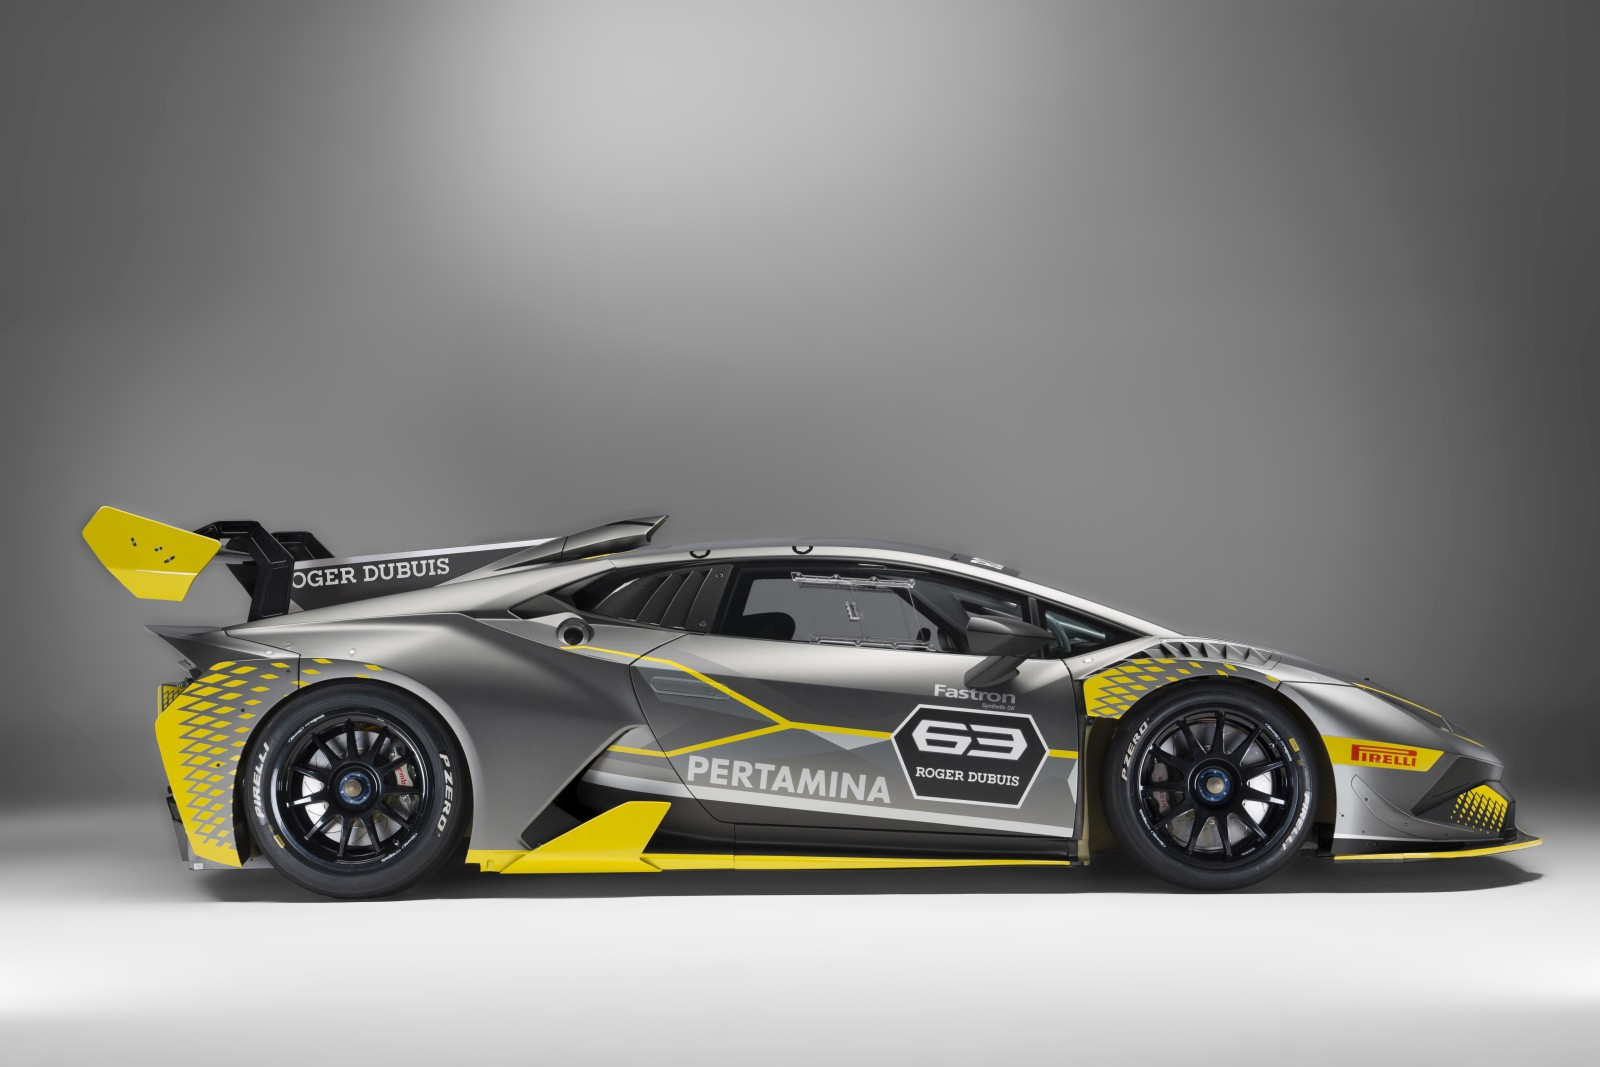 The List Price Of New Lamborghini Huracán Super Trofeo Evo Is 235 000 Euros Plus Tax In Europe And Asia 295 Usd America